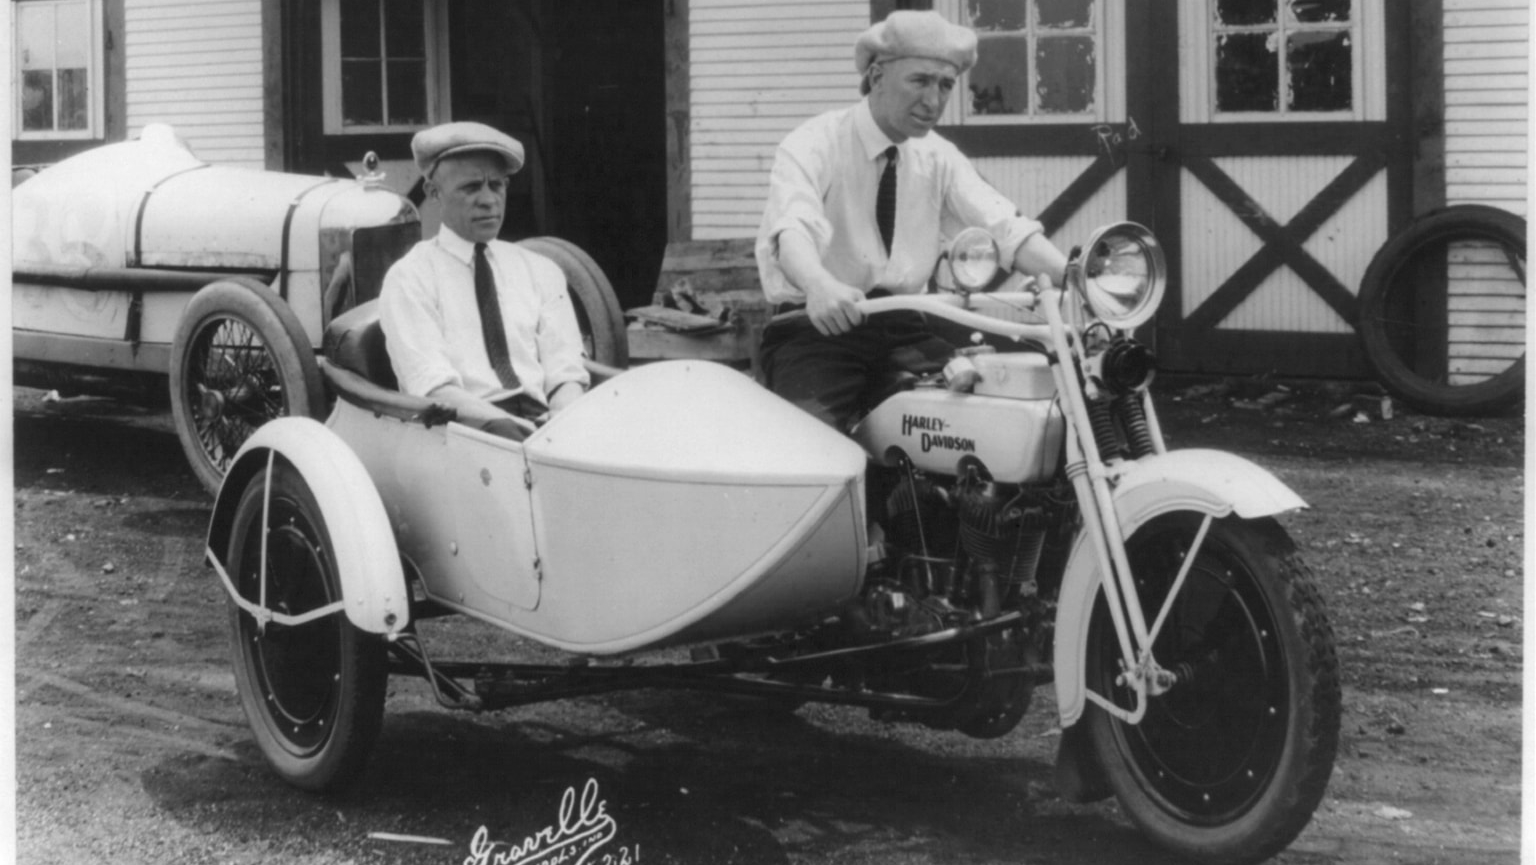 hight resolution of before launching a trade war trump should study the original anti rhqz boss hoss trike